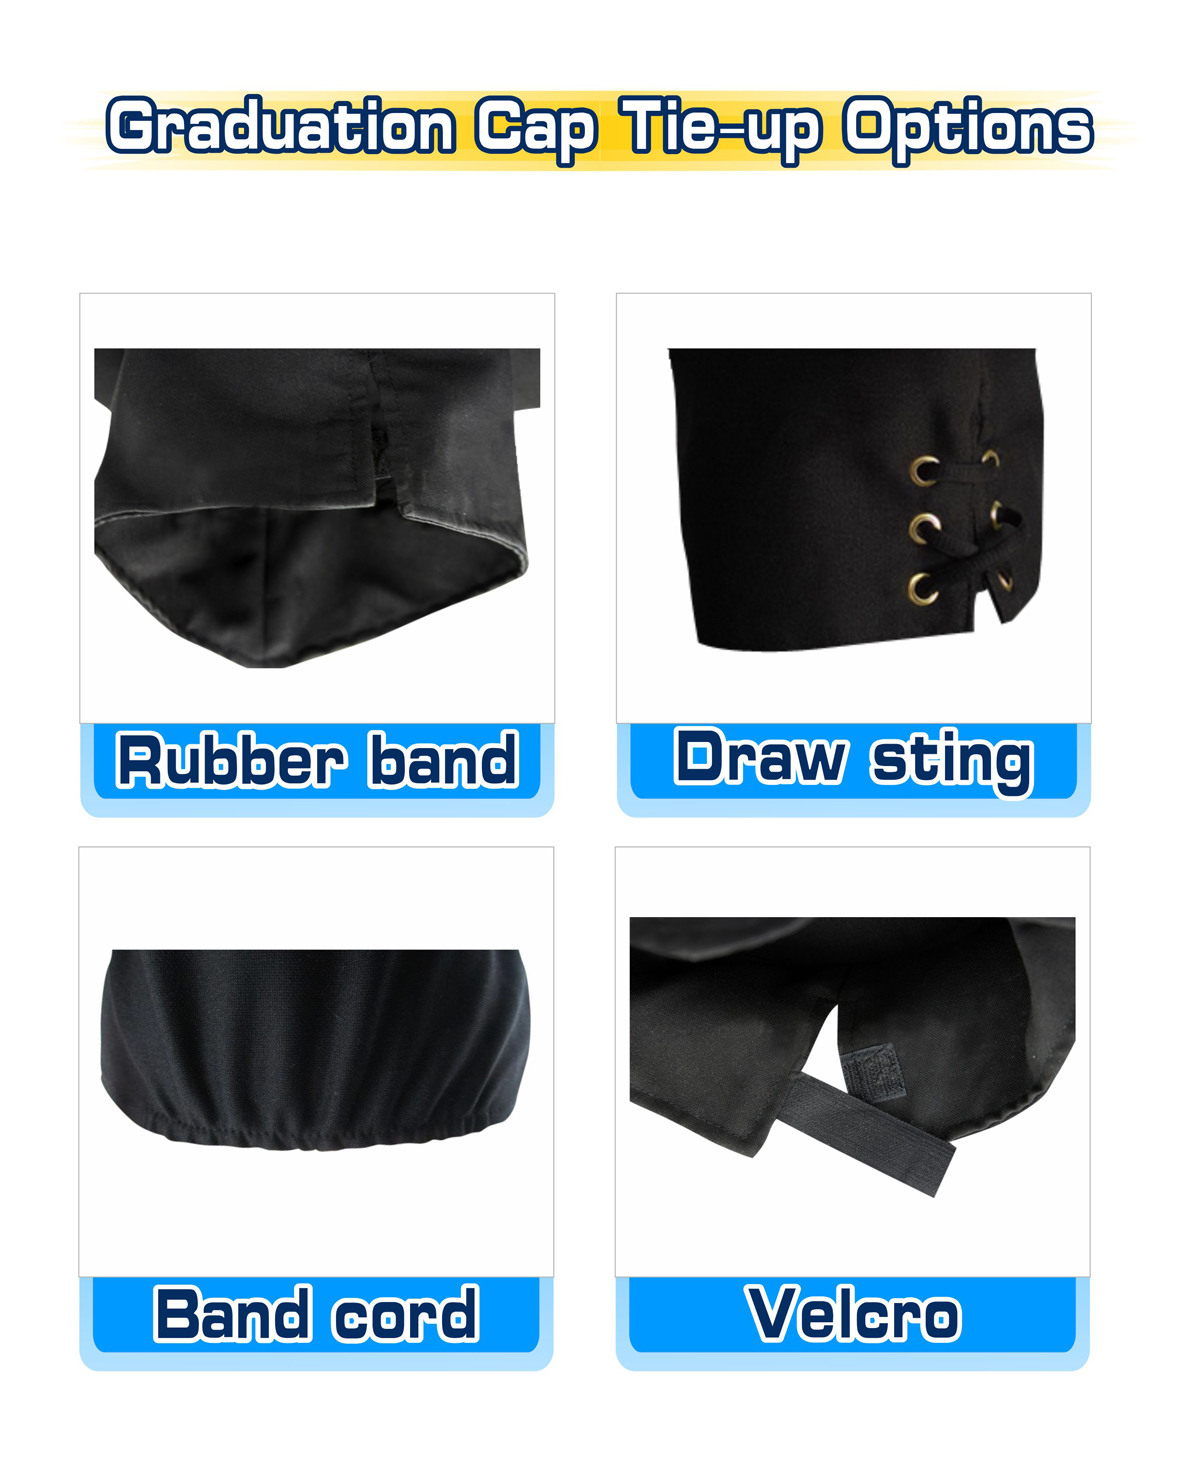 Graduation Cap Tie-up Options